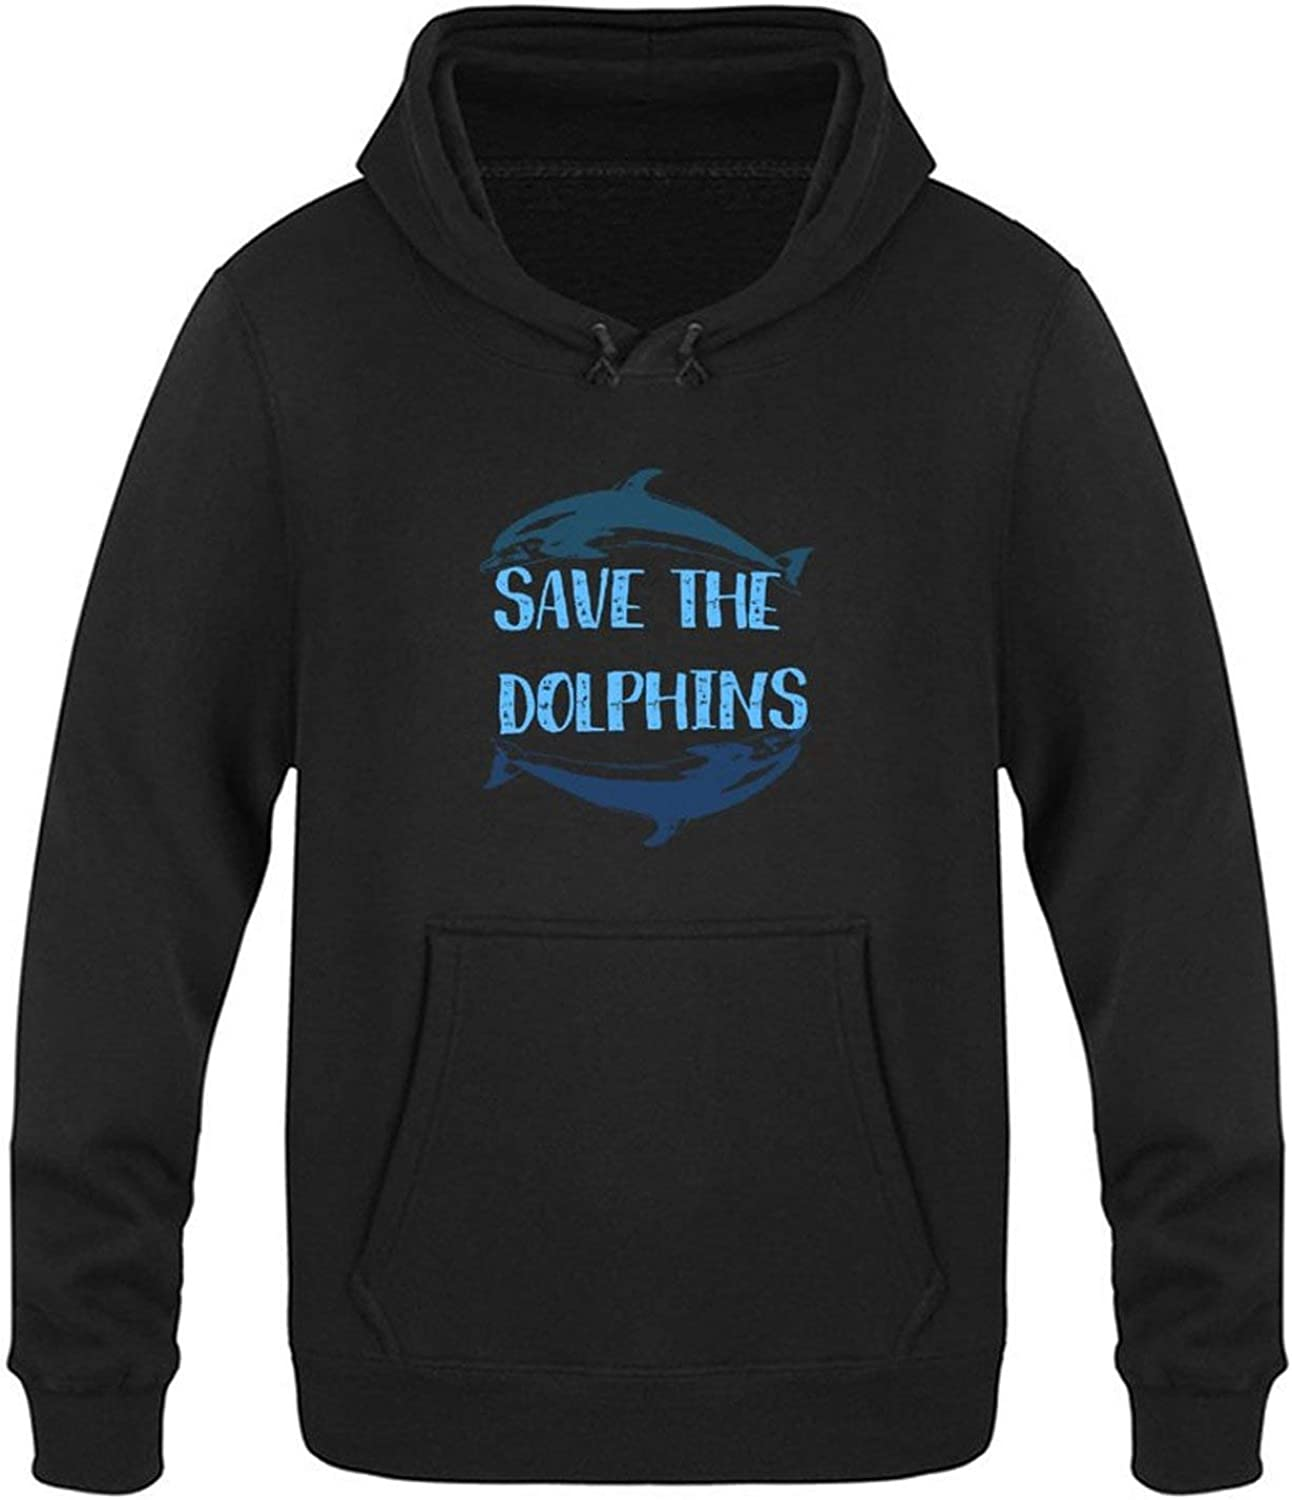 Save supreme The Dolphins Courier shipping free shipping Men's and Hoodies Women's Pullover Sweatshirts